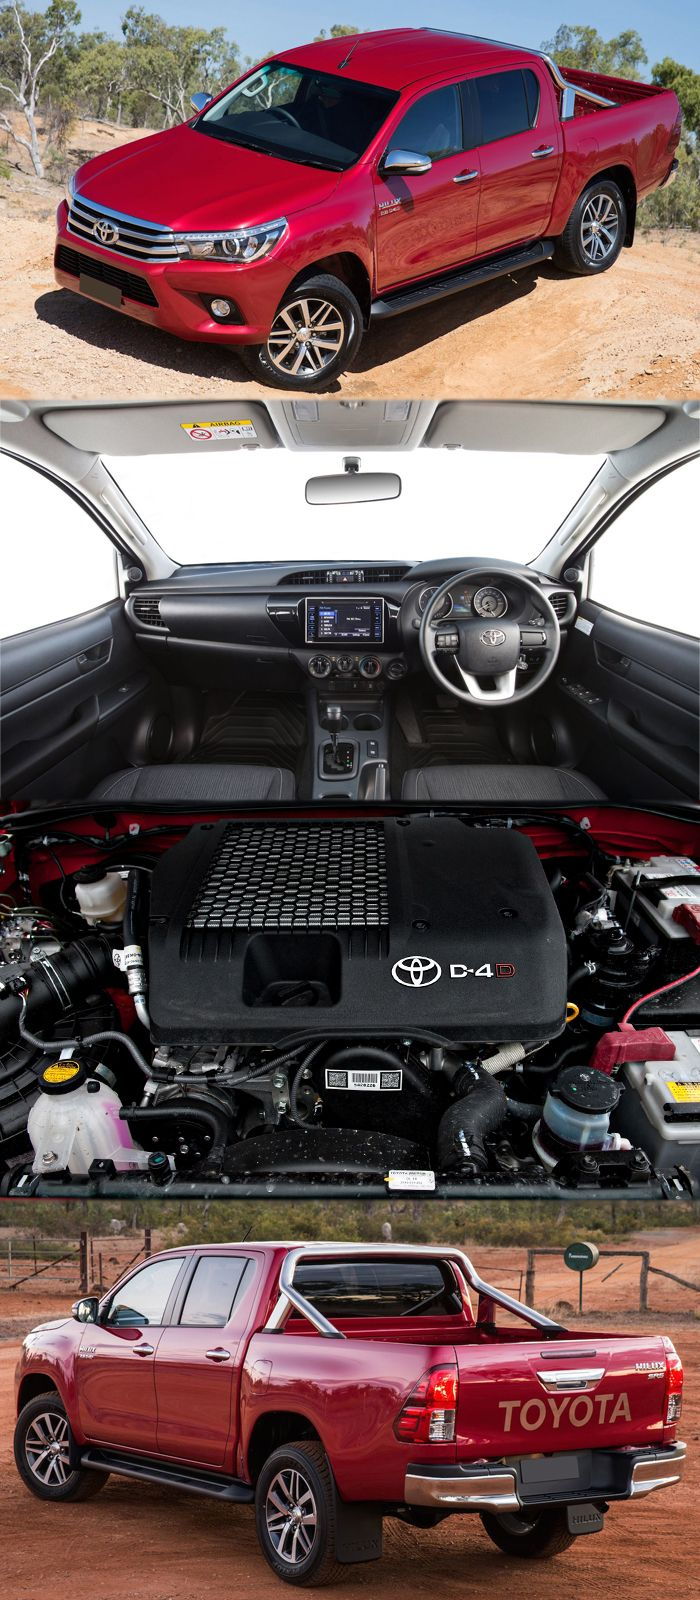 The Extra Practical Toyota Hilux with Plenty of Standard Kit For more details at: http://www.reconditionengines.co.uk/rec-model.asp?size=2.8&part=reconditioned-toyota-hiluxdieselpickup-engine&mo_id=31433